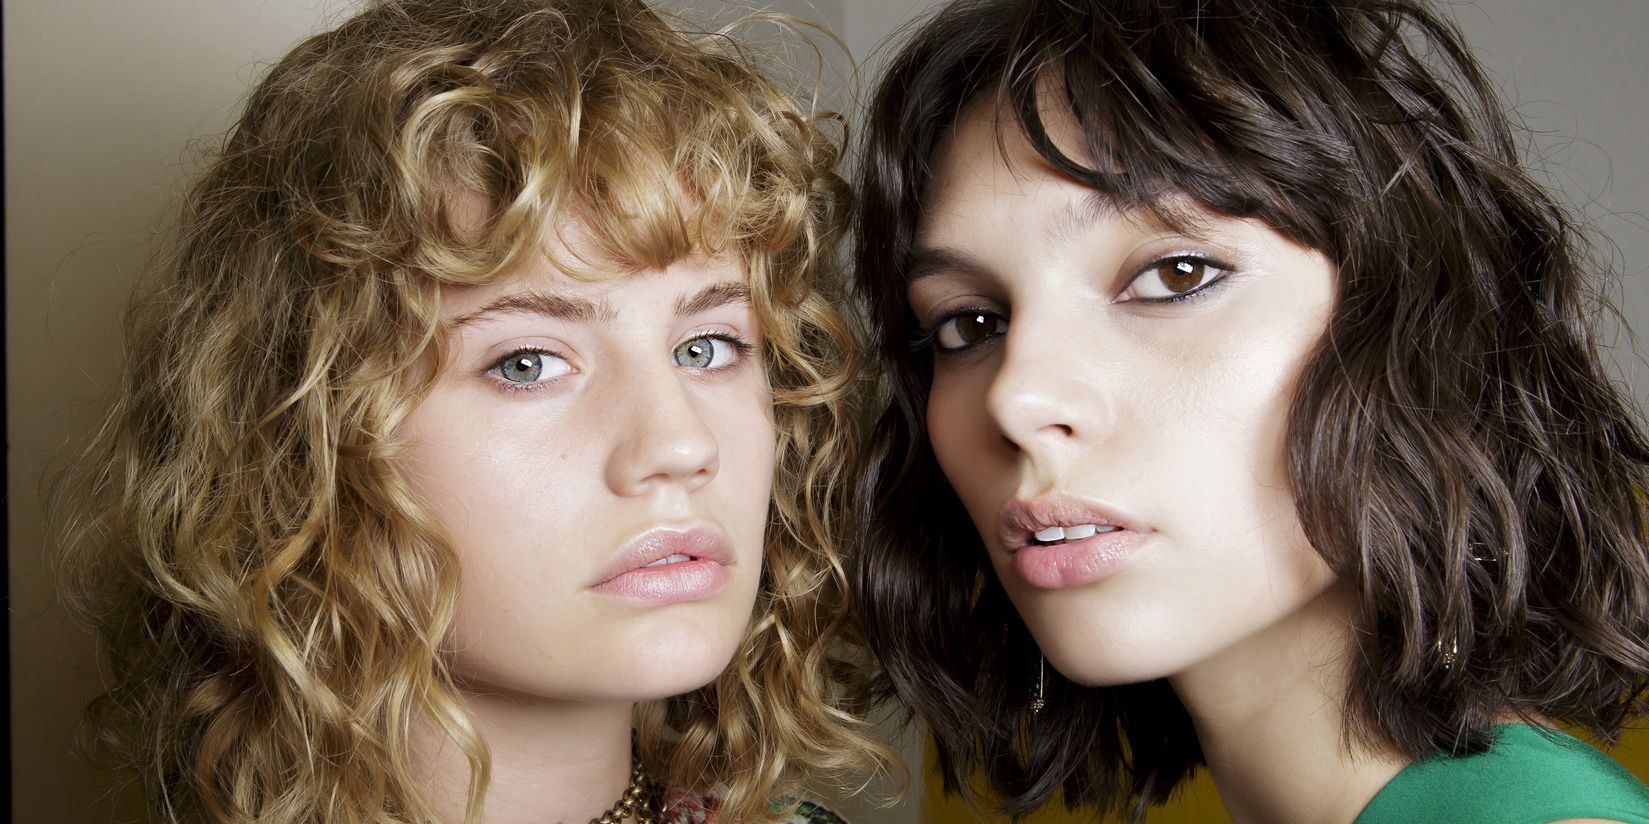 Perm Hair Everything You Need To Know About Getting A Perm Hairstyle